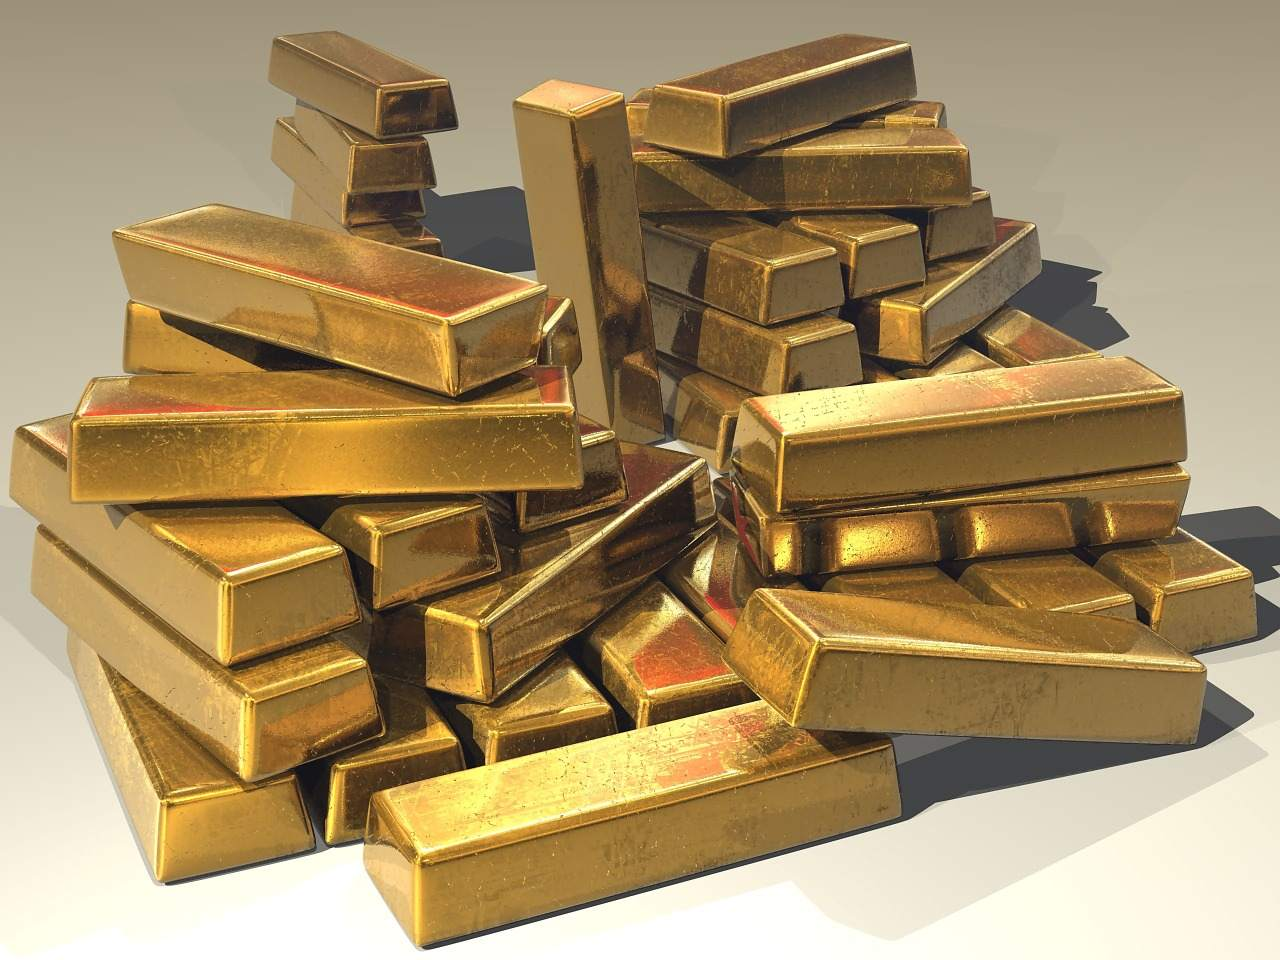 Gold Barren - Goldpreis robust - ETF helfen